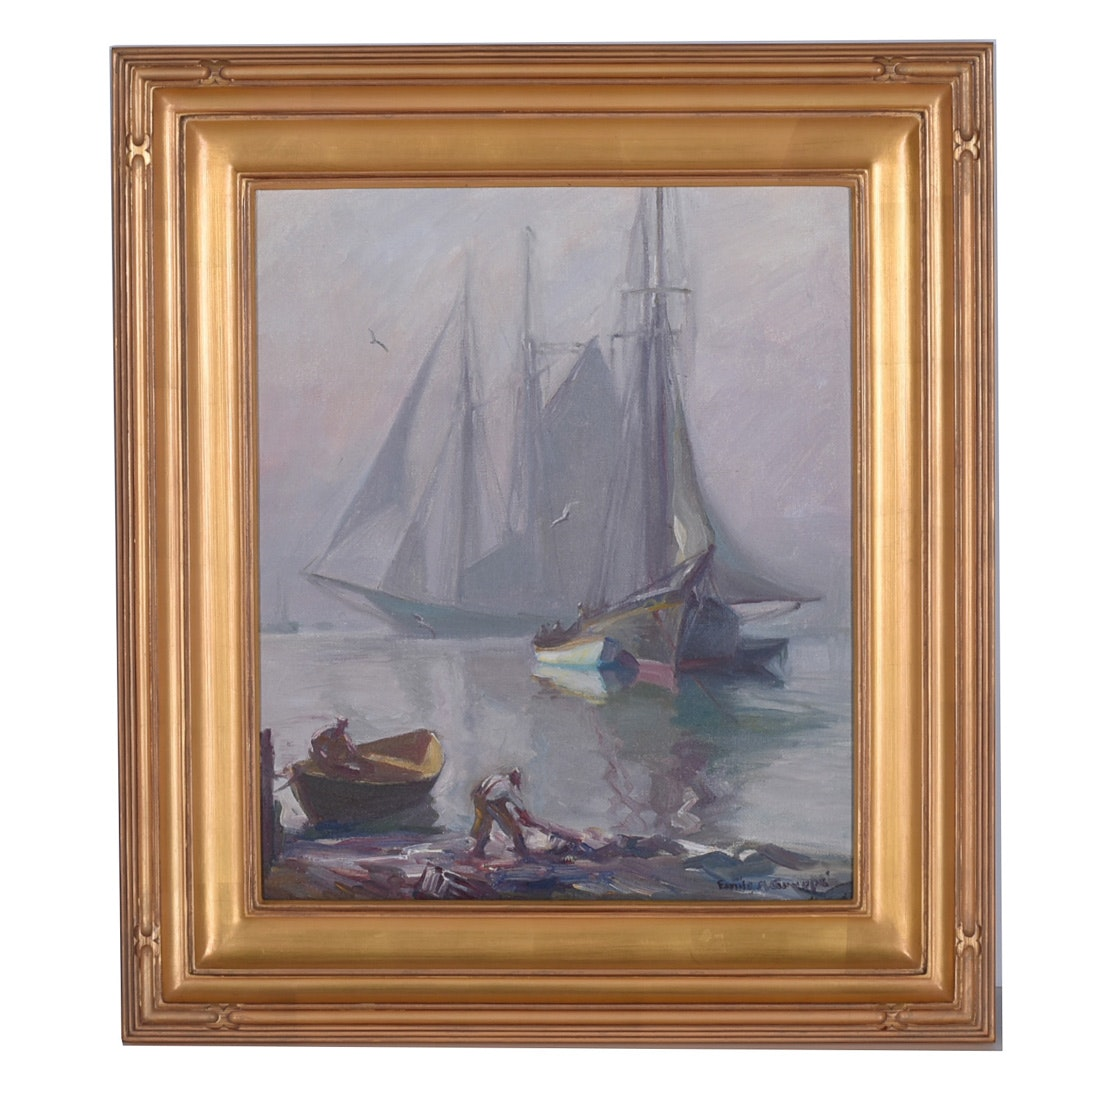 Emile A. Gruppe Signed Oil Painting